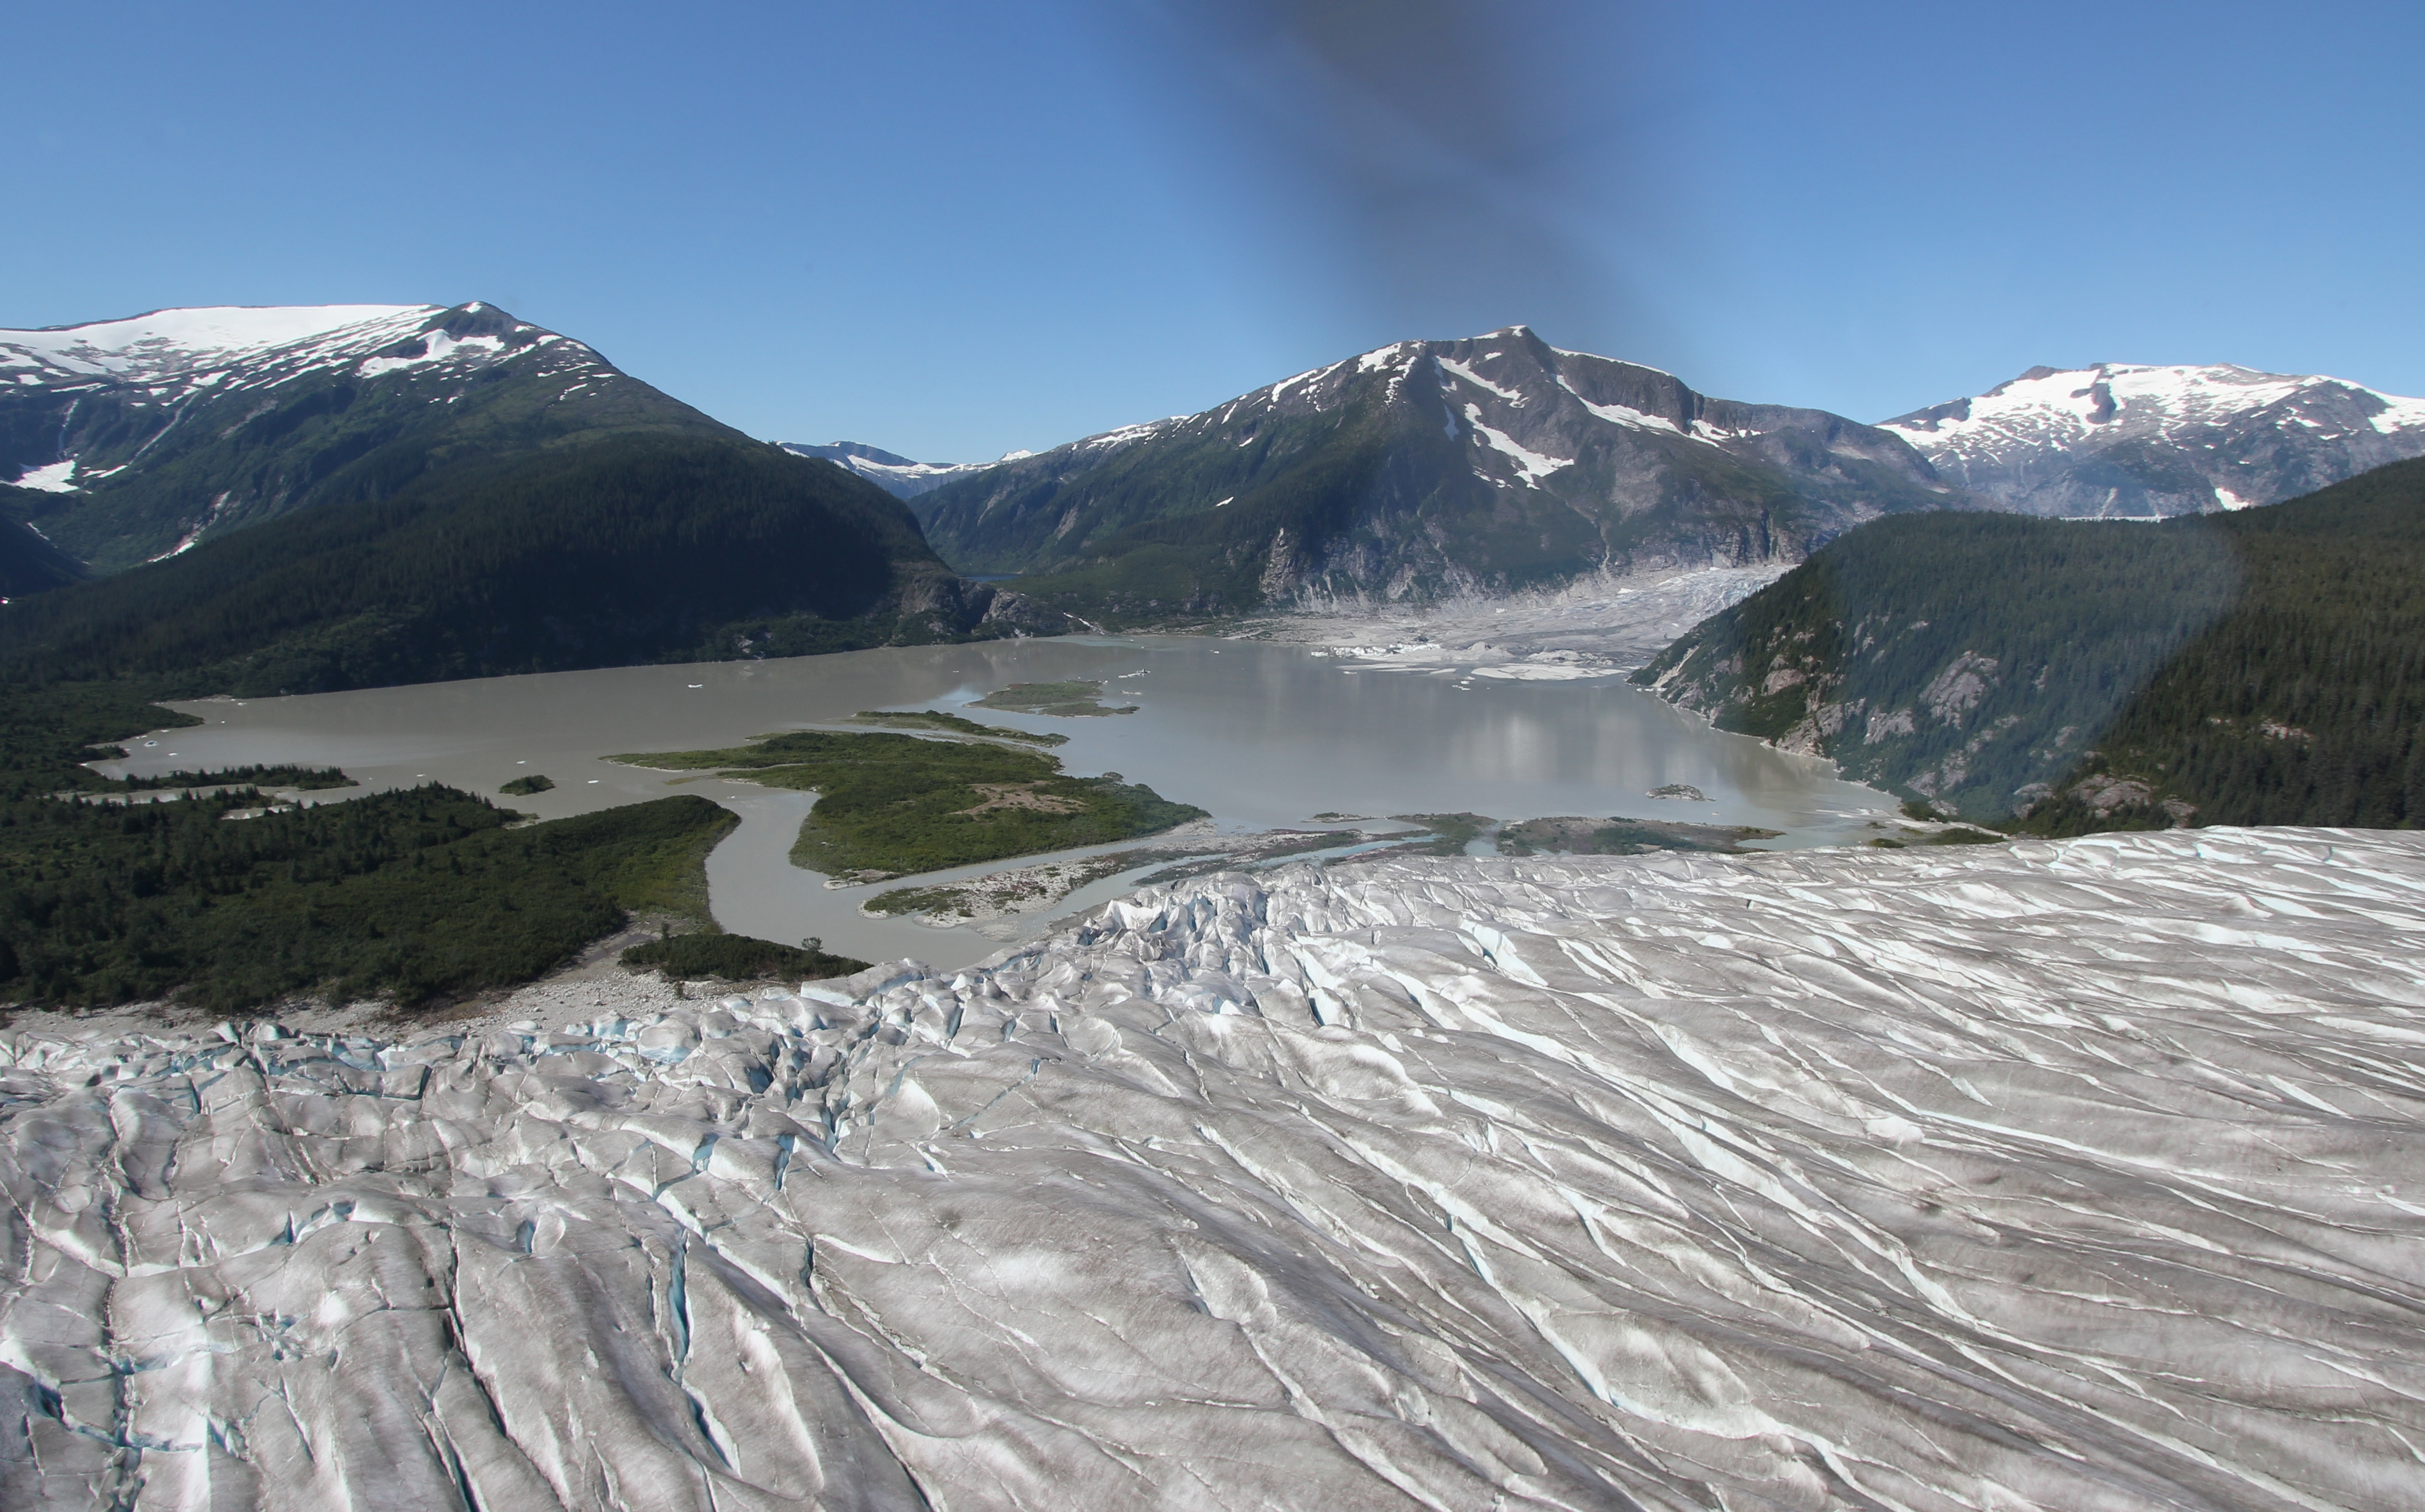 The view looking south-west from the edge of Taku Glacier over Norris Lake to the retreating Norris Glacier terminus and Glory Lake.